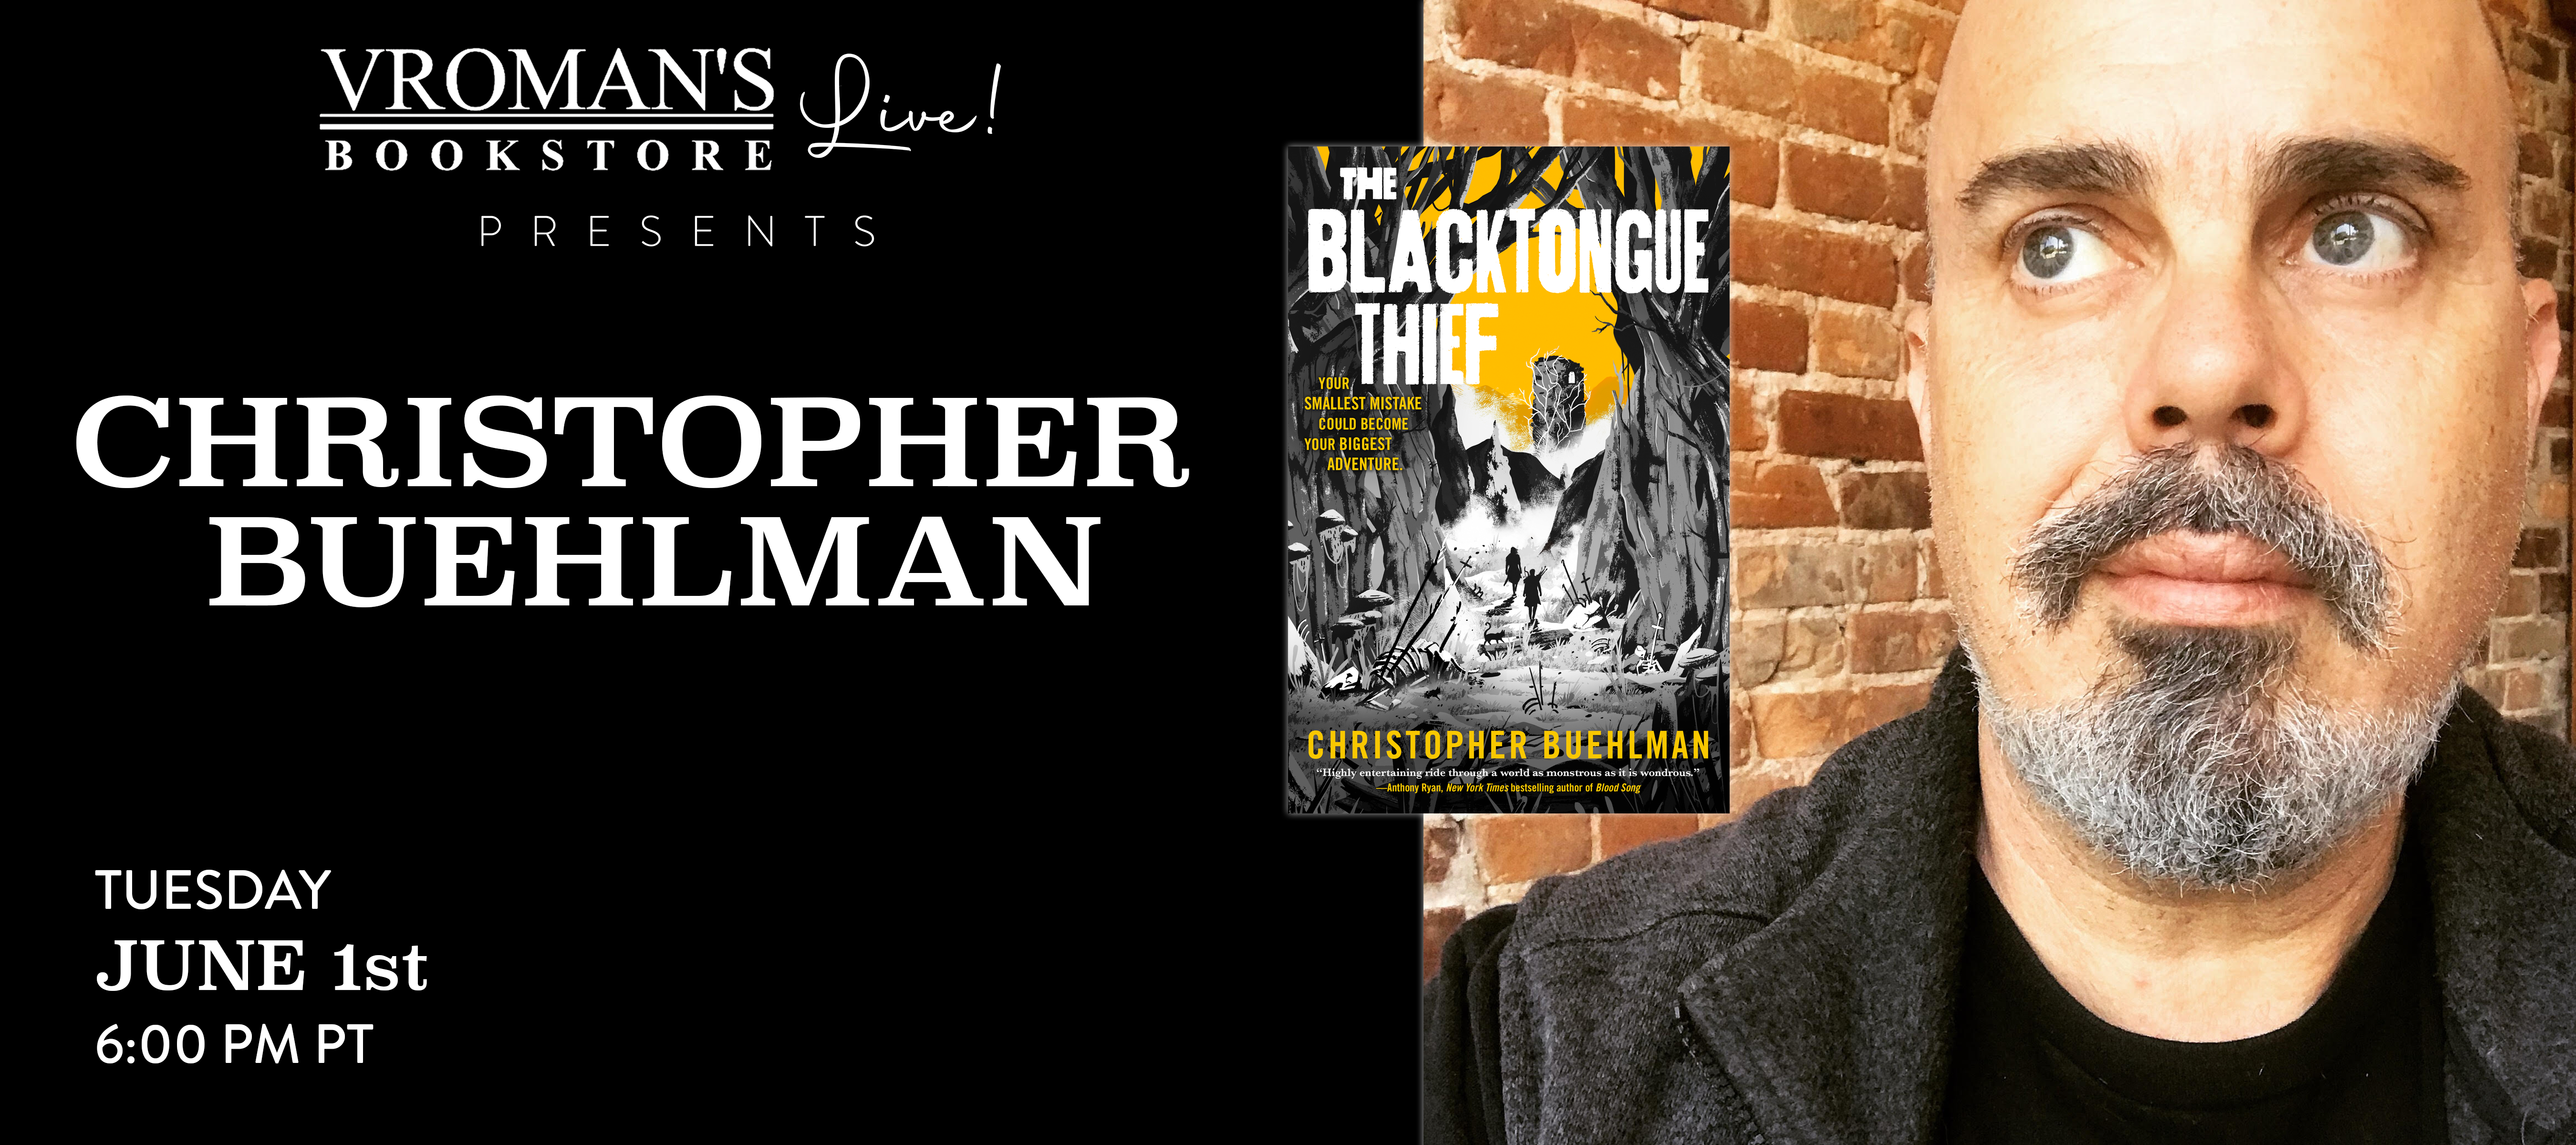 Image of Christopher Buehlman and book